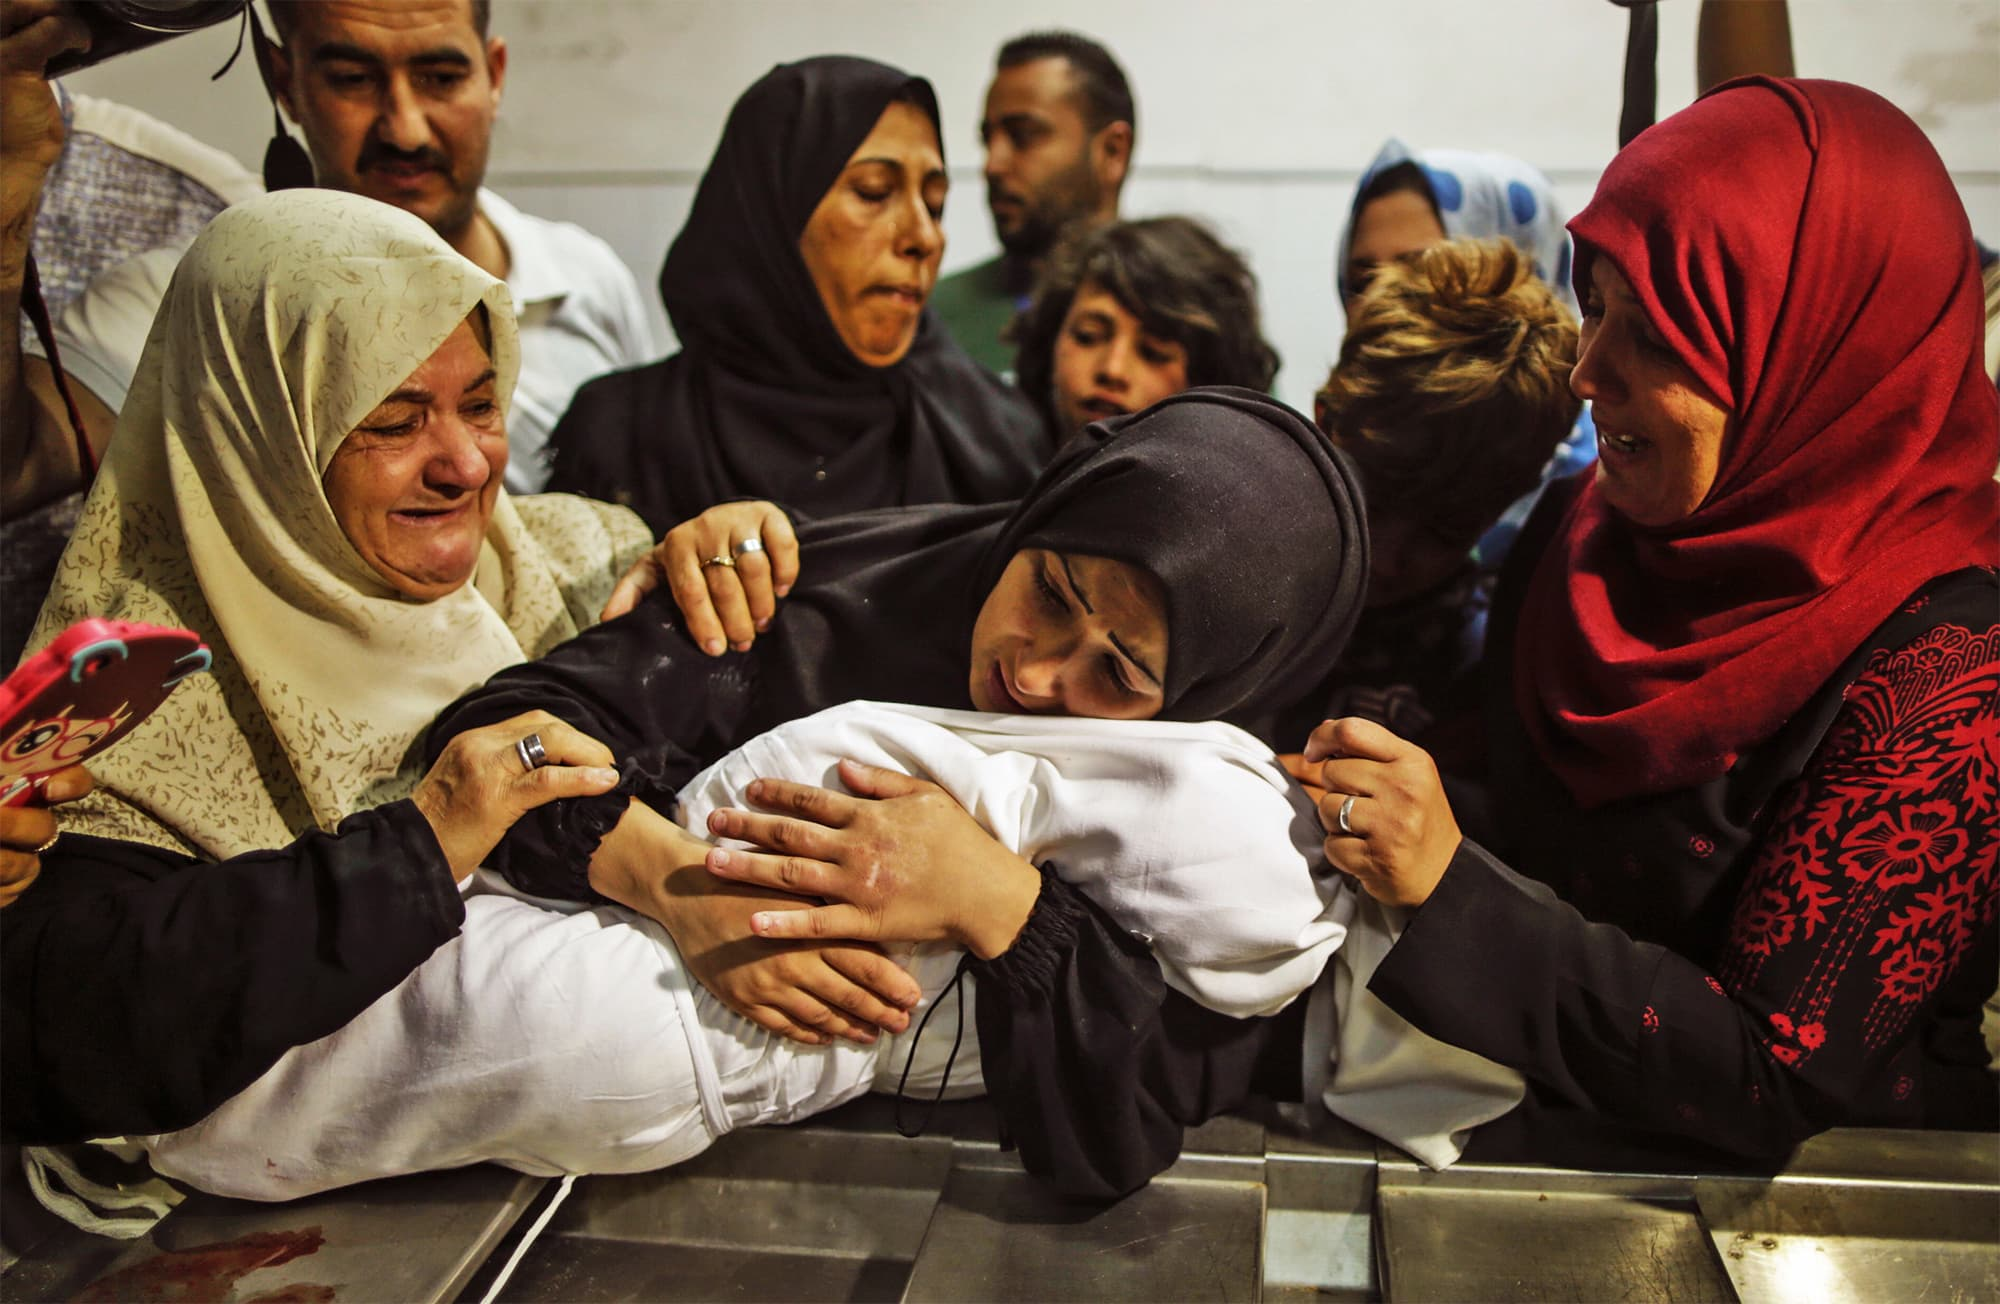 The mother (C) of Leila Al Ghandour, a Palestinian baby of 8 months who, according to the Palestinian Health Ministry died of tear gas inhalation during clashes in East Gaza the previous day, holds her at the morgue of Al Shifa hospital in Gaza City on May 15, 2018. — AFP